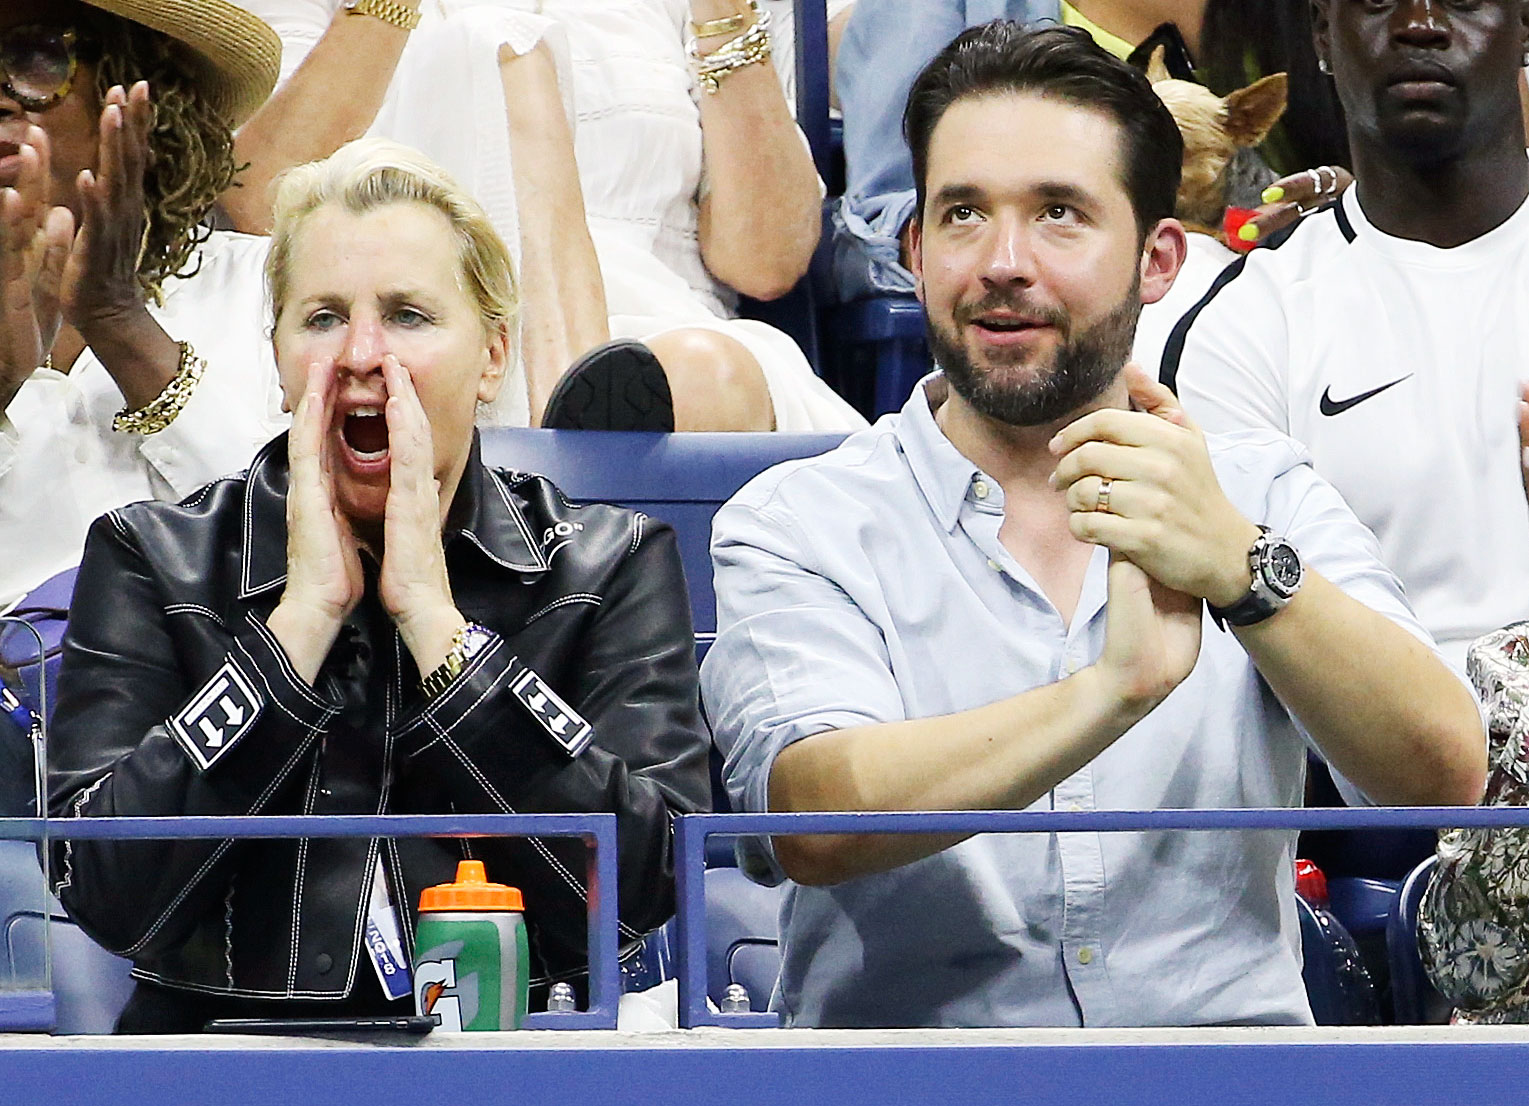 Alexis Ohanian Us Open 2018 - Williams' agent and her husband supported her from the sidelines during her match on August 29.